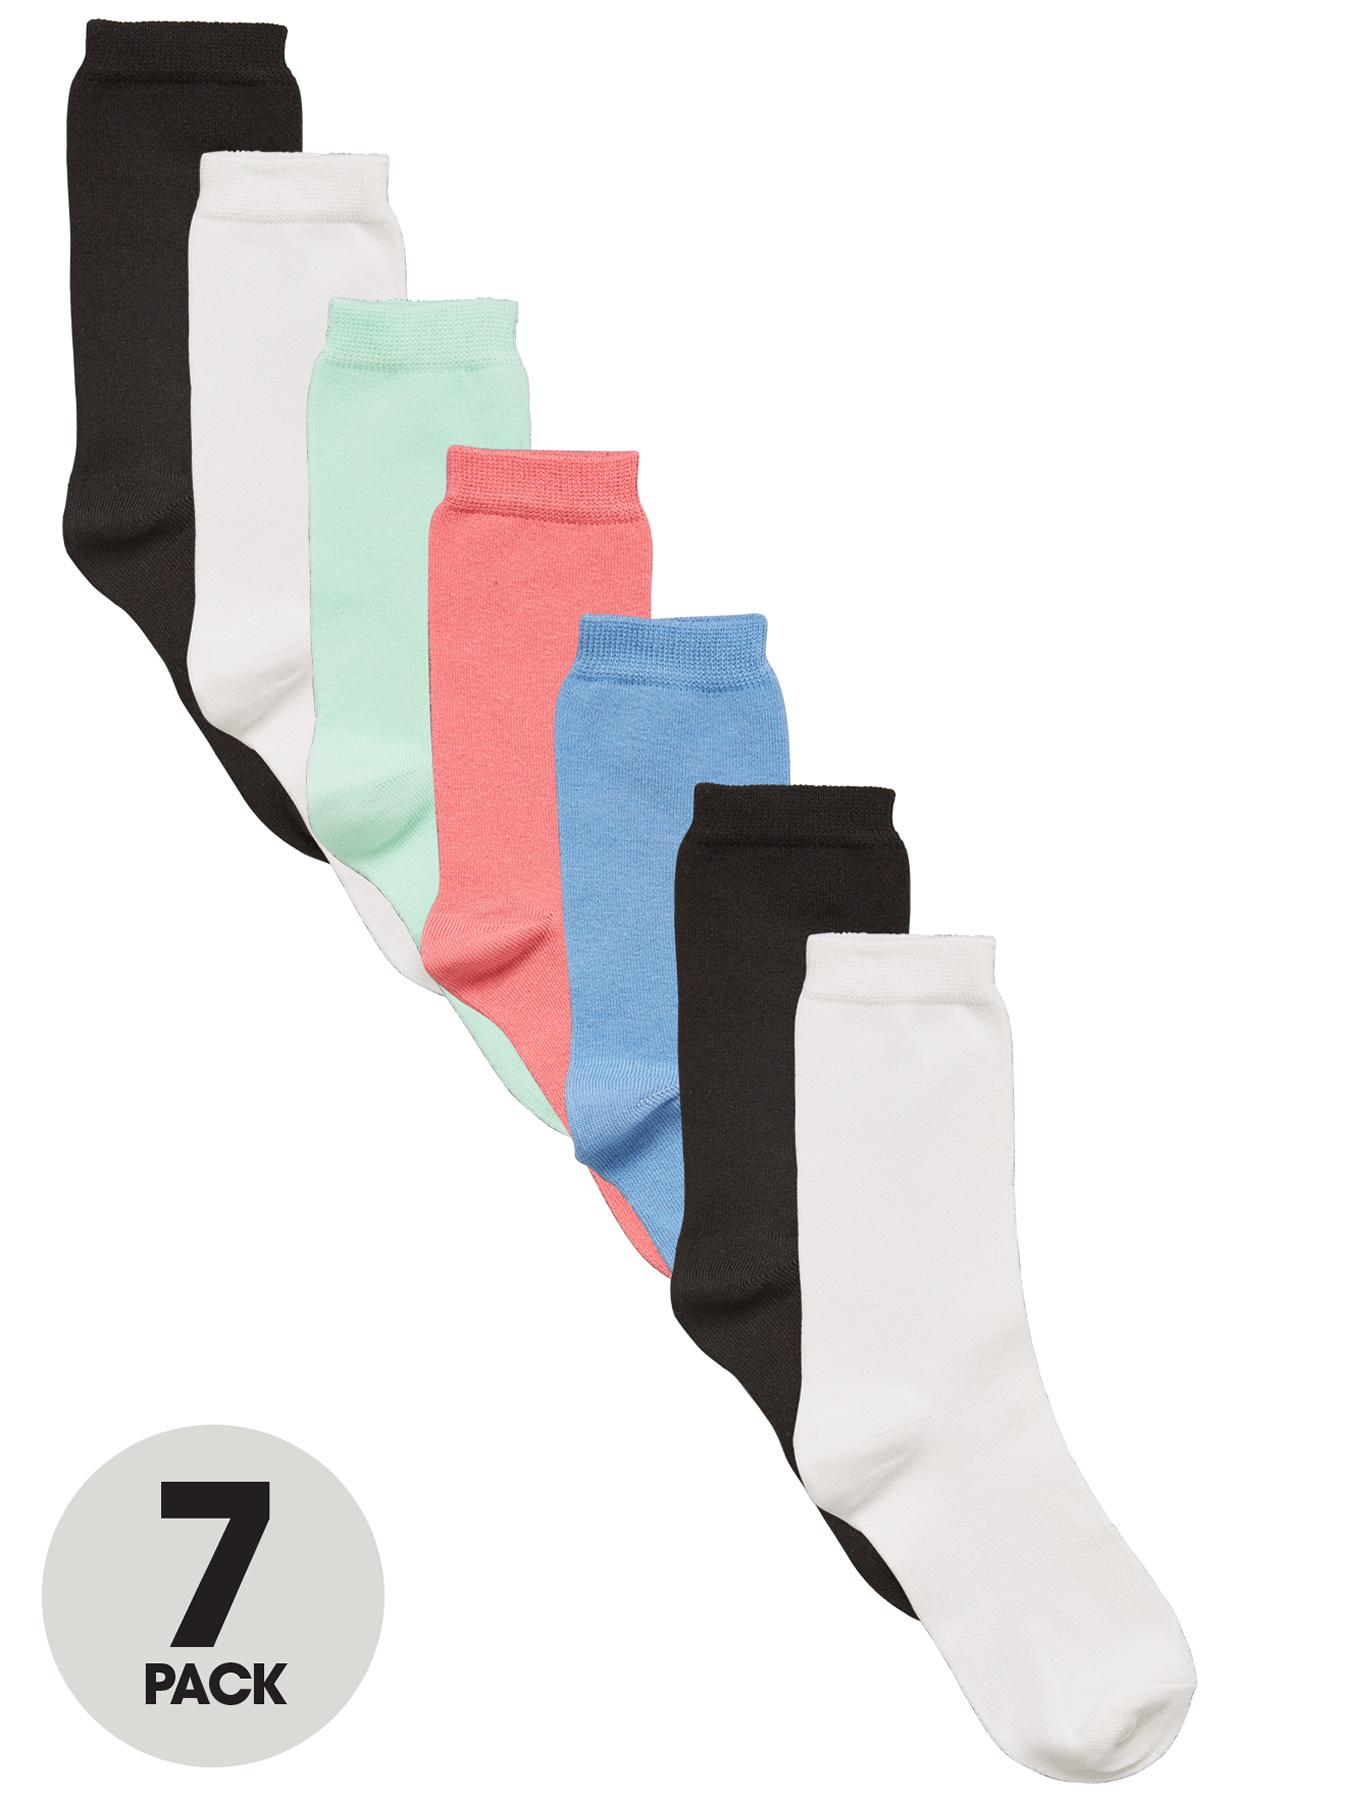 Intimates Essentials Socks (7 Pack)